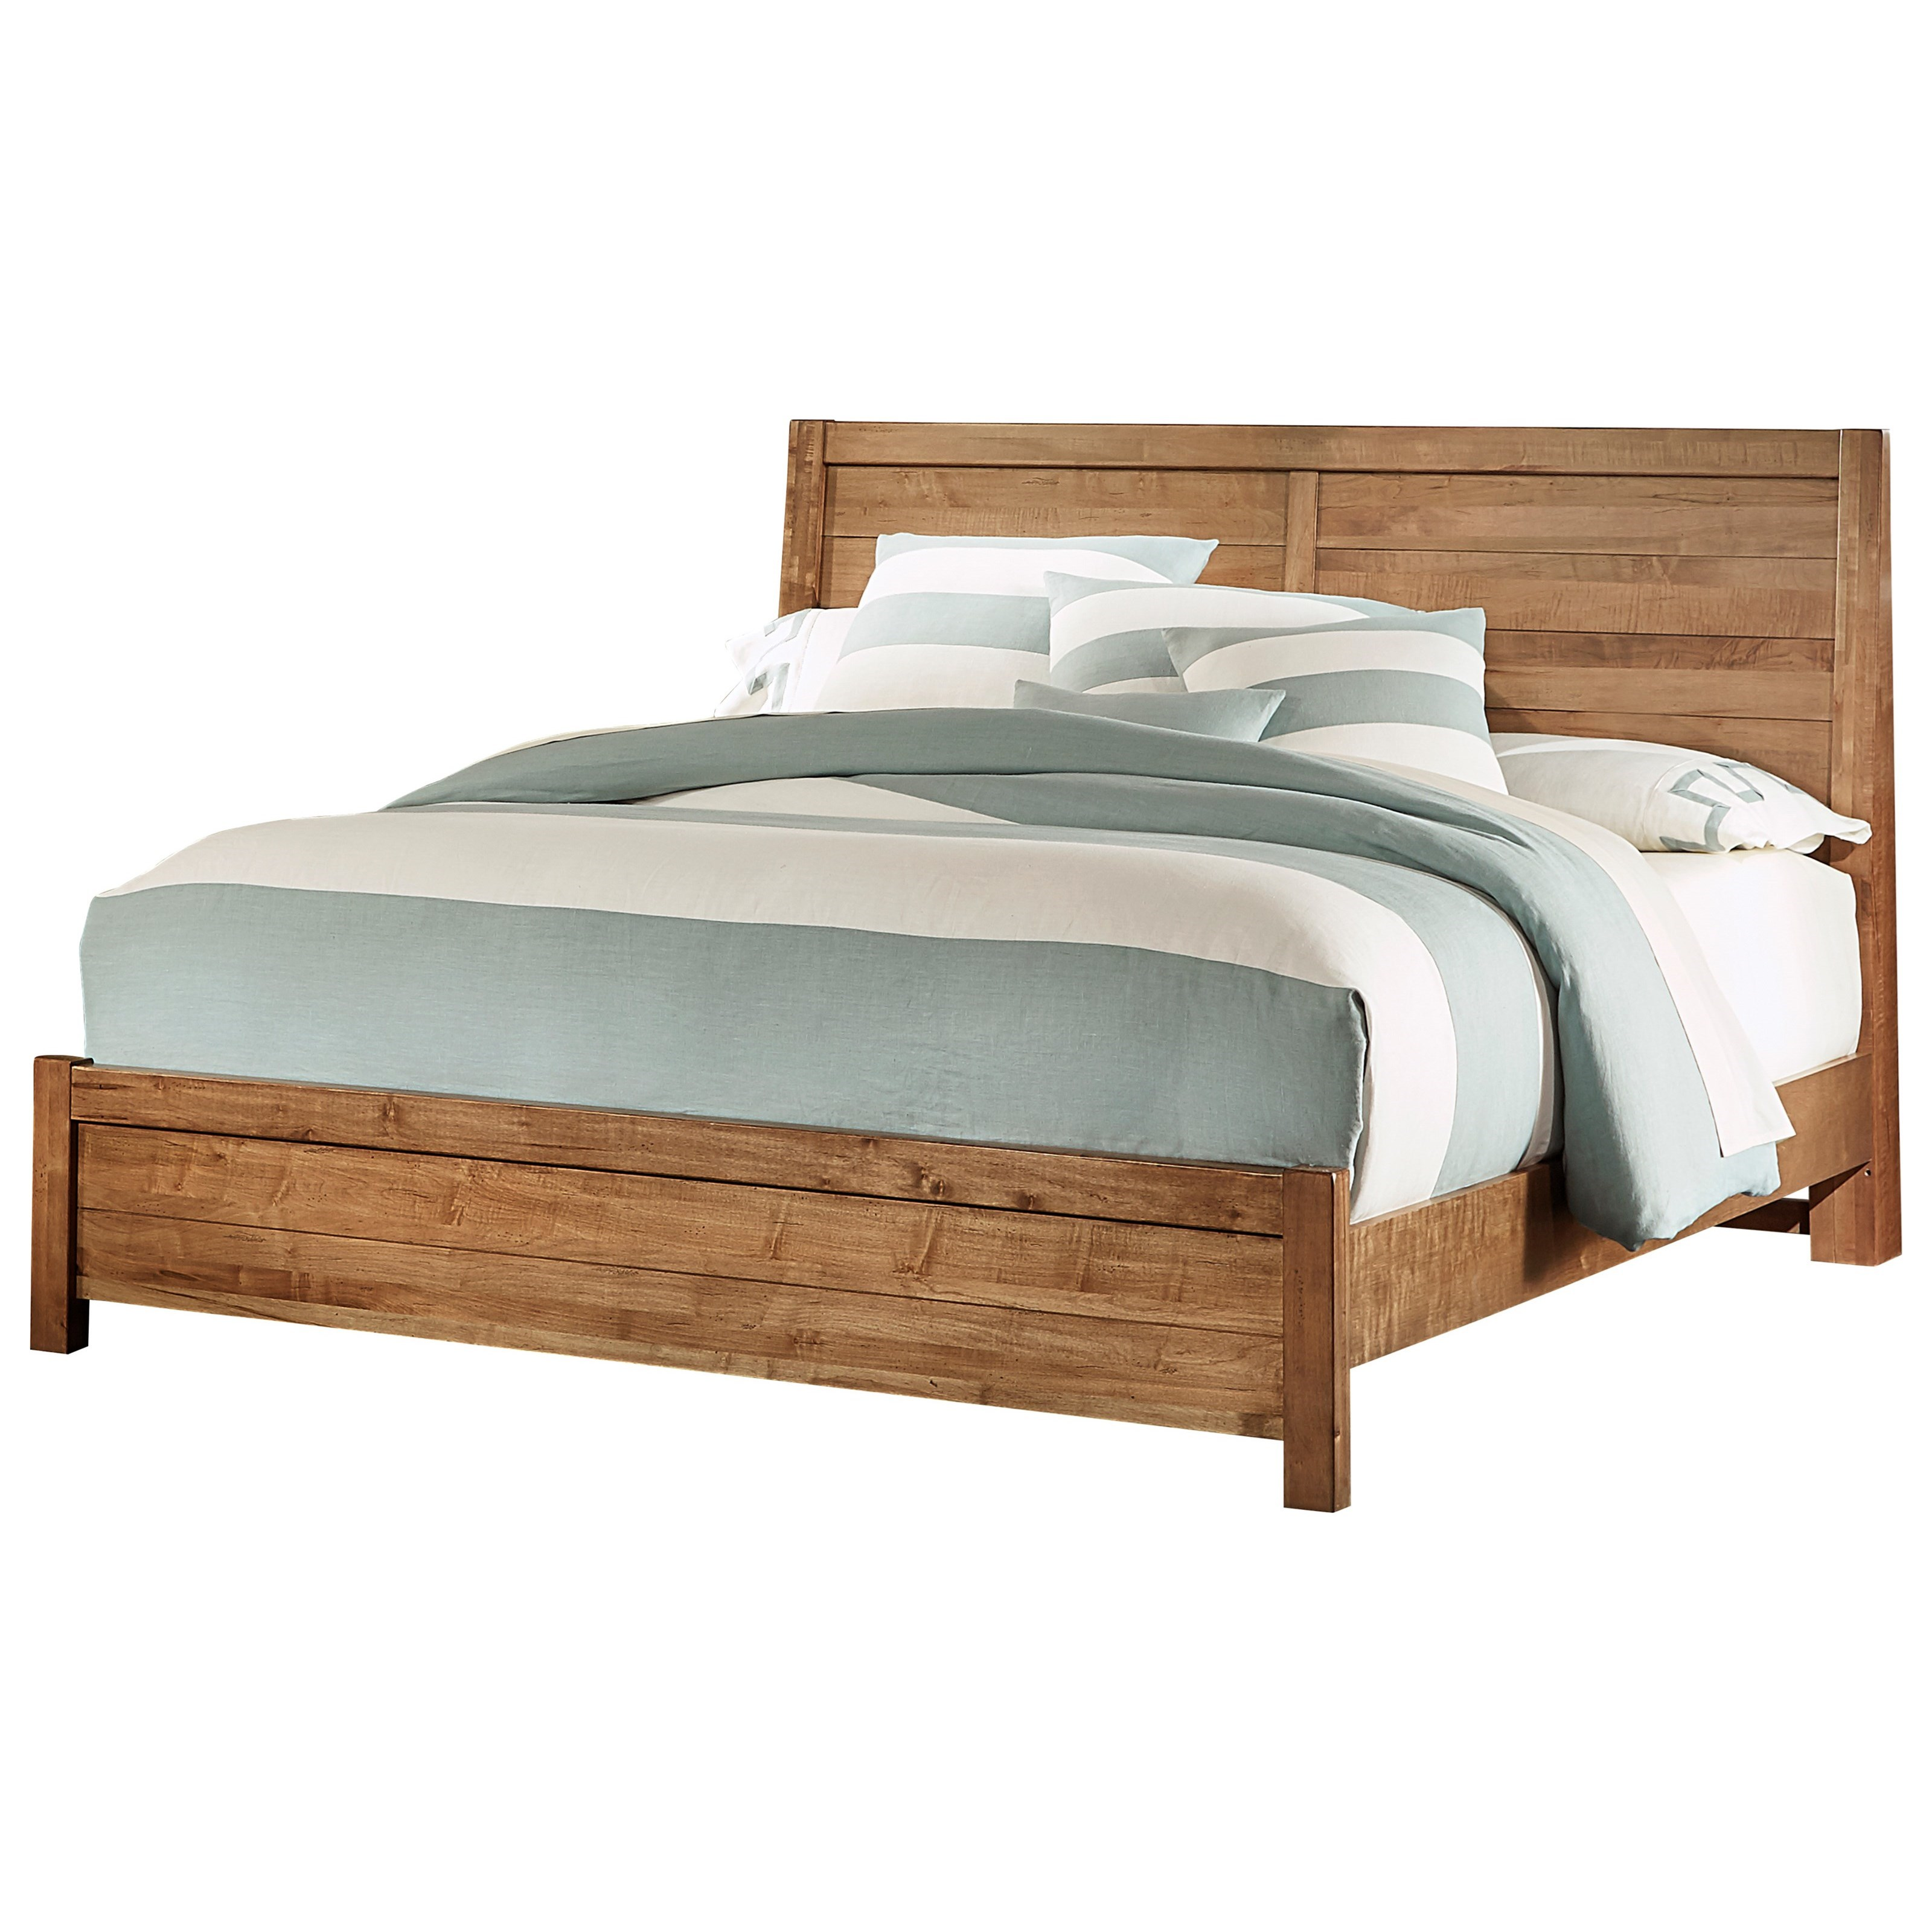 Sedgwick Queen Panel Bed by Artisan & Post at Northeast Factory Direct